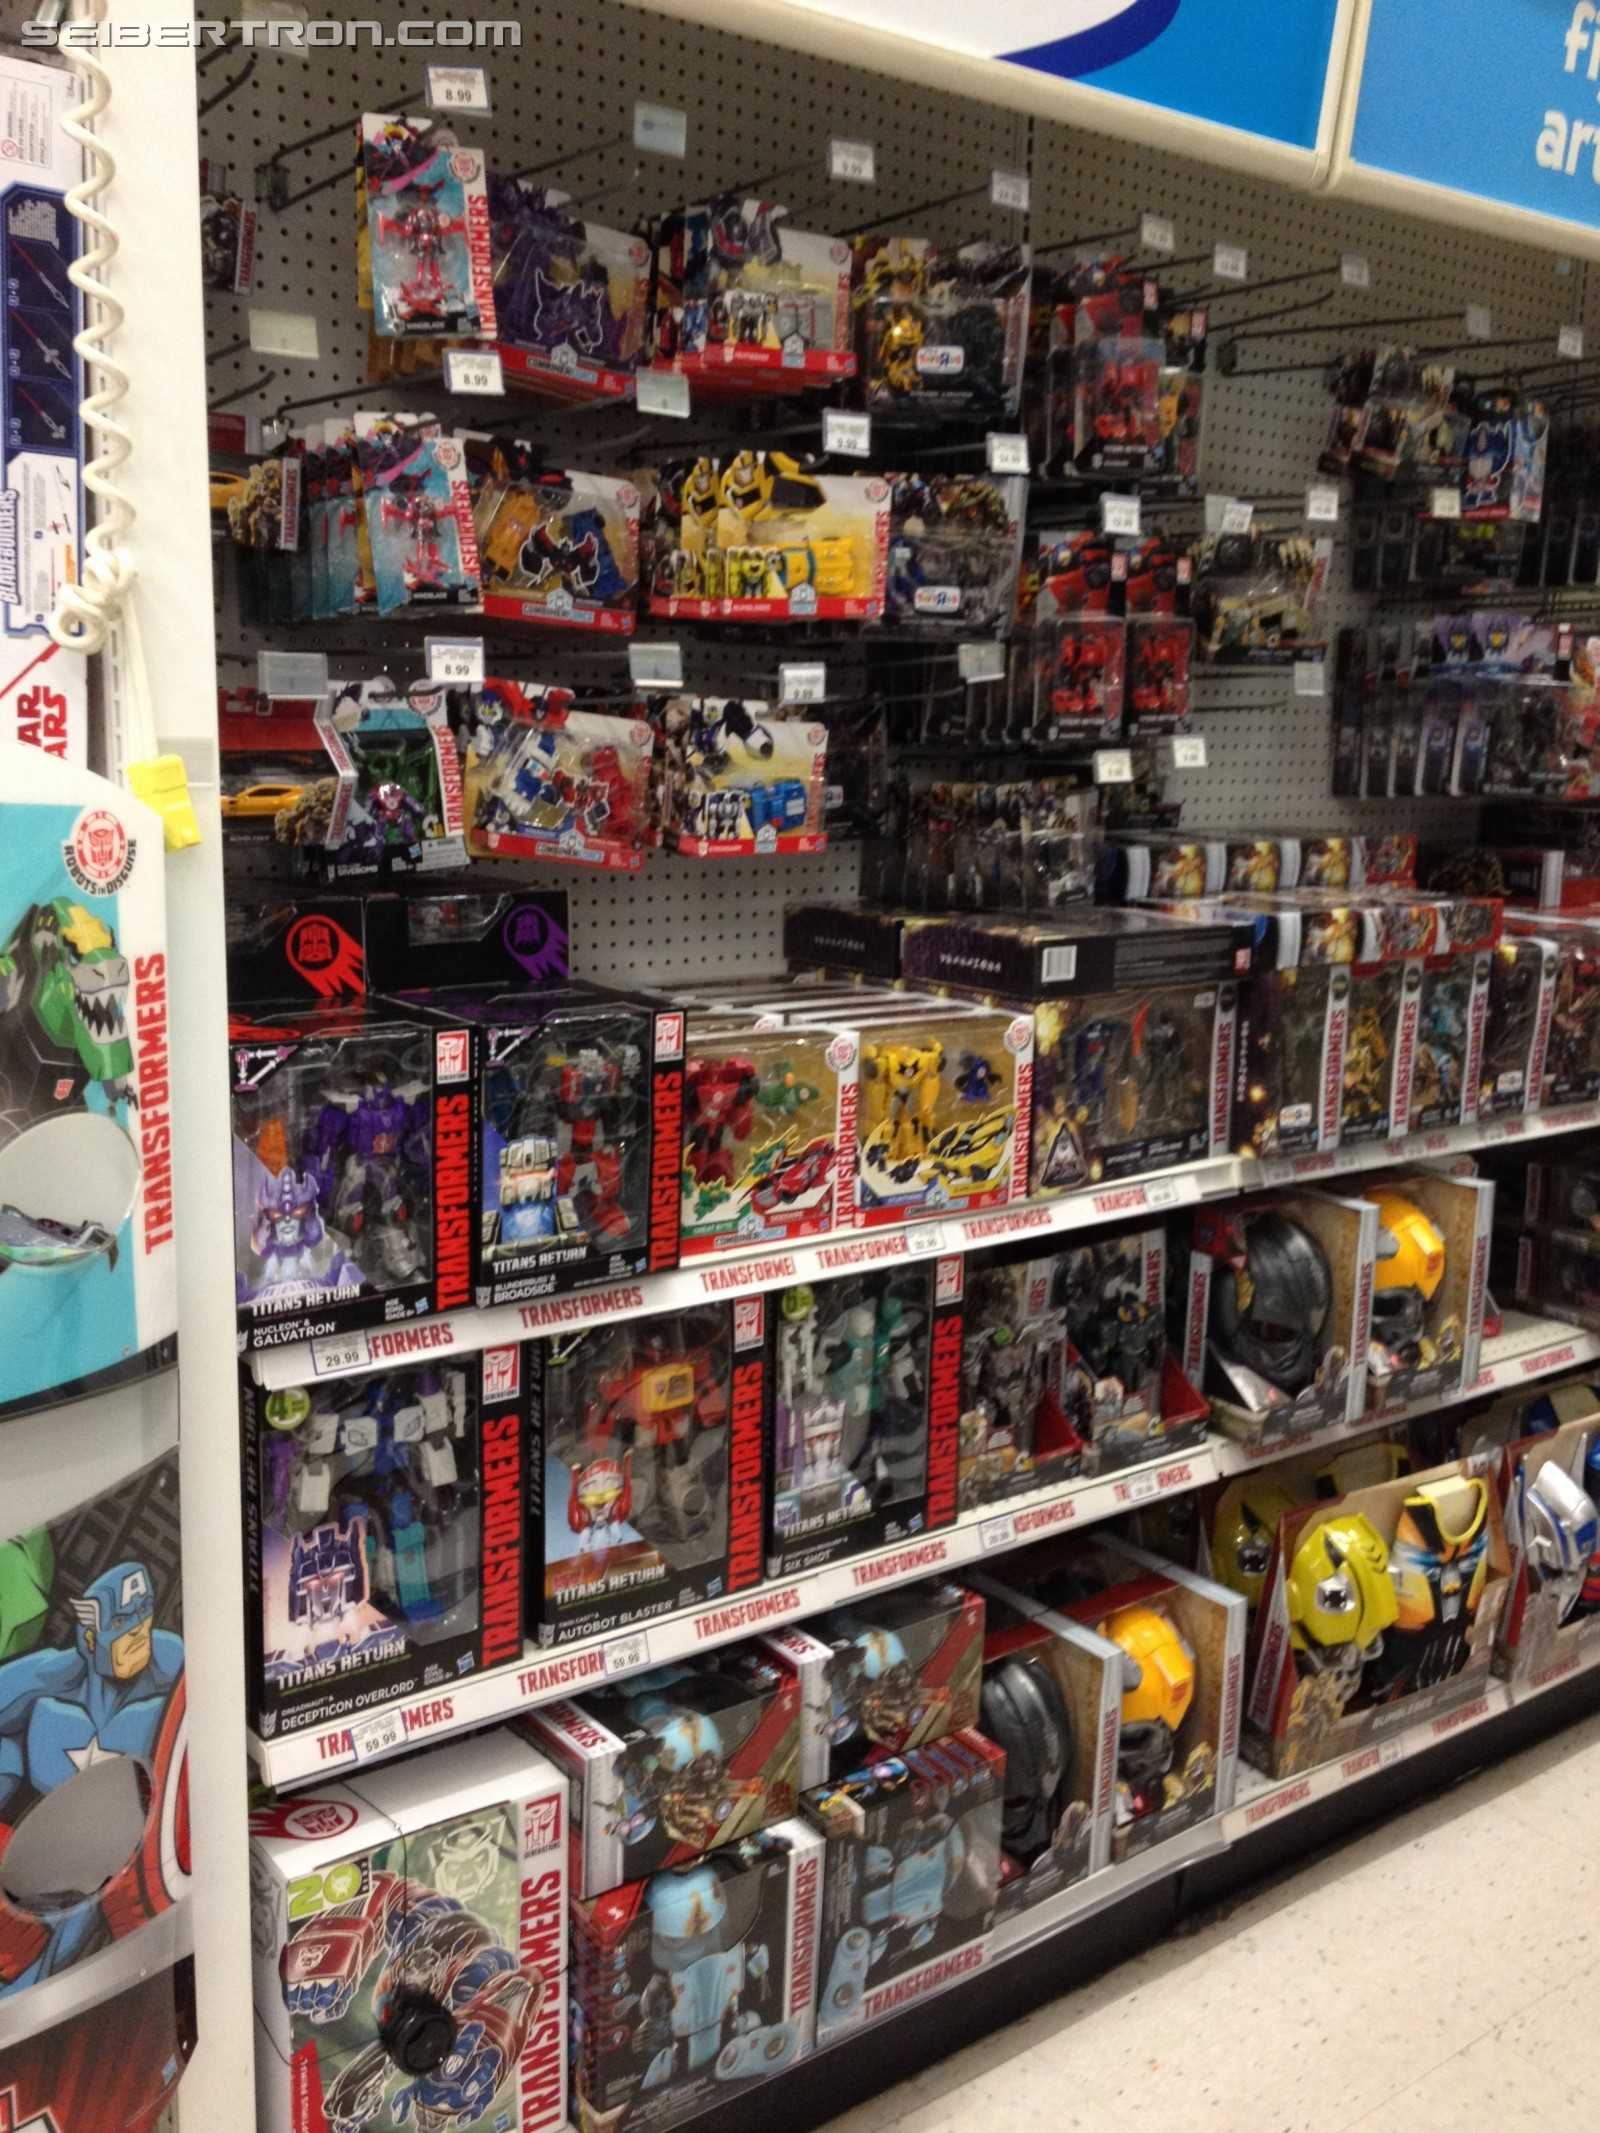 Badewannenspielzeug Toys R Us Fall Restock In Full Swing At Toysrus Canada With Entire